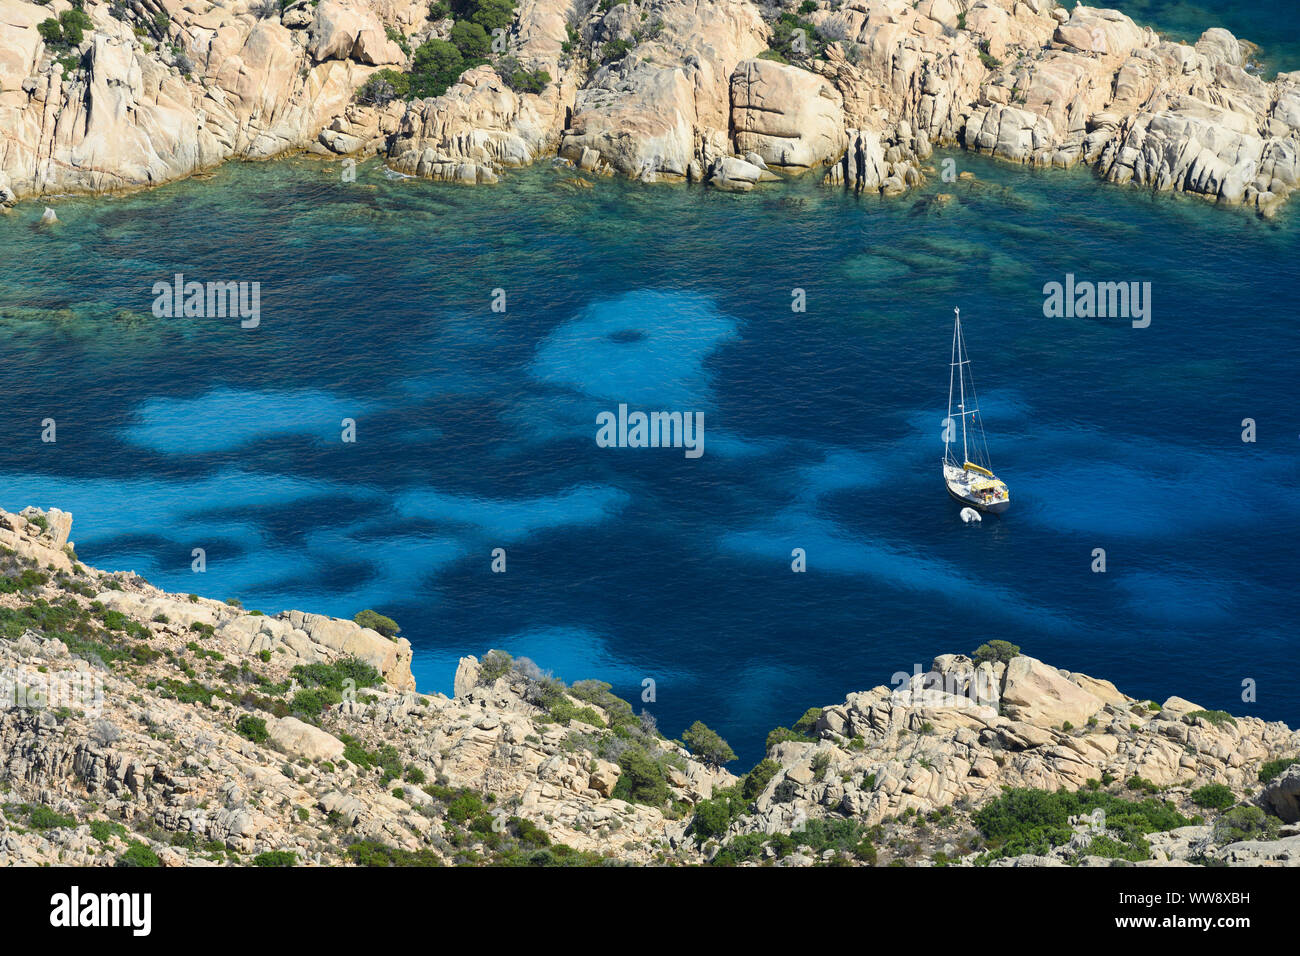 View from above, stunning aerial view of a sailboat floating on a turquoise clear water. Cala Coticcio (also known as Tahiti), Sardinia, Italy. Stock Photo